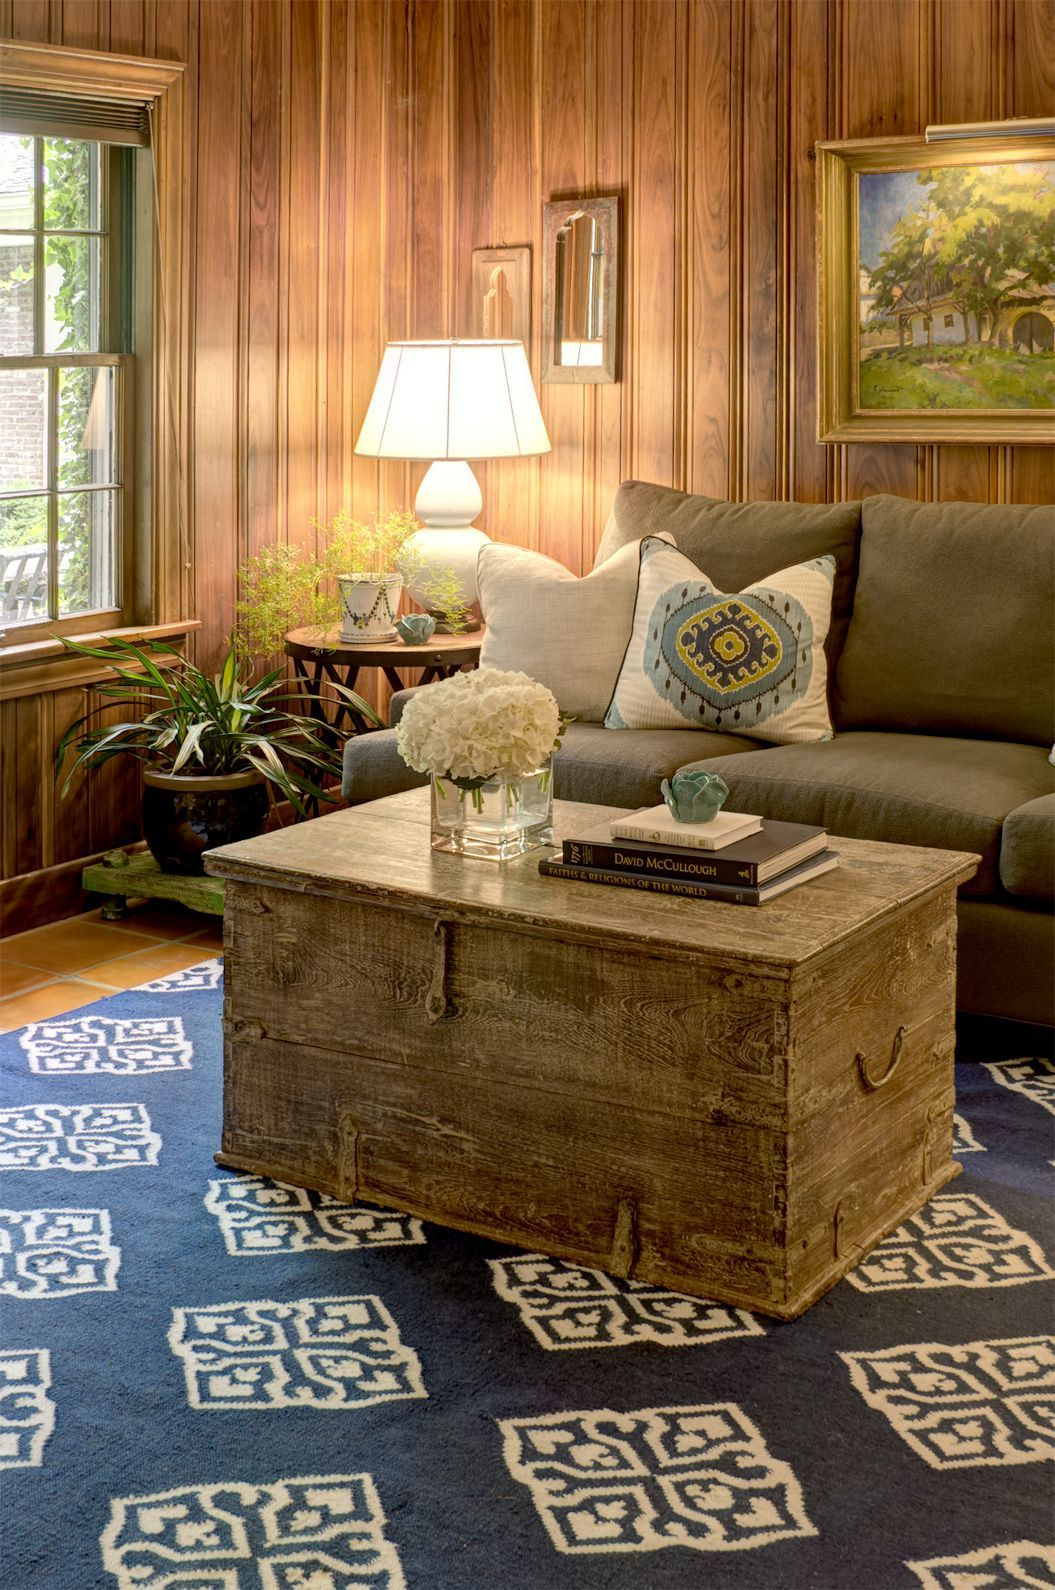 Wood Paneled Smoky Room: An Old Trunk Anchors This Setting Within A Gorgeous Wood